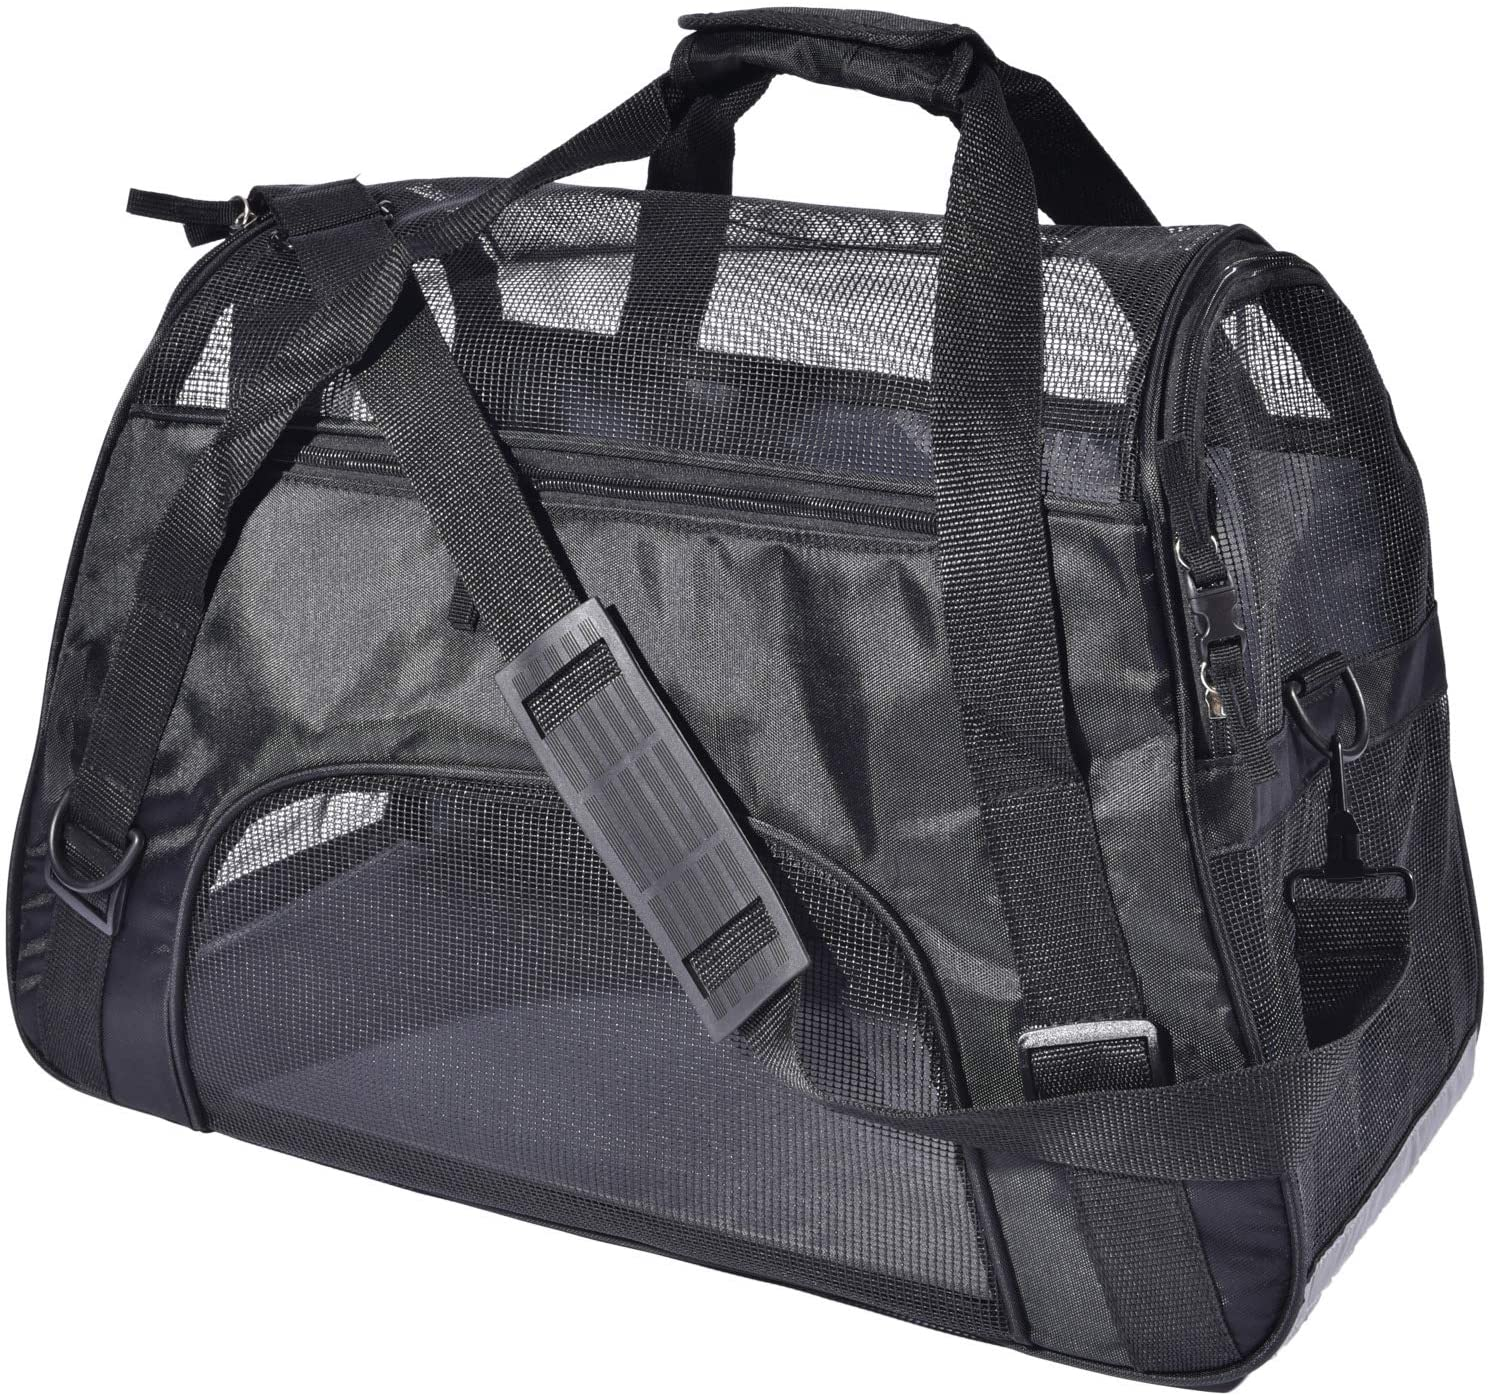 Top 10 Best Cat Carriers For Nervous Cats [Updated November 2020] 6